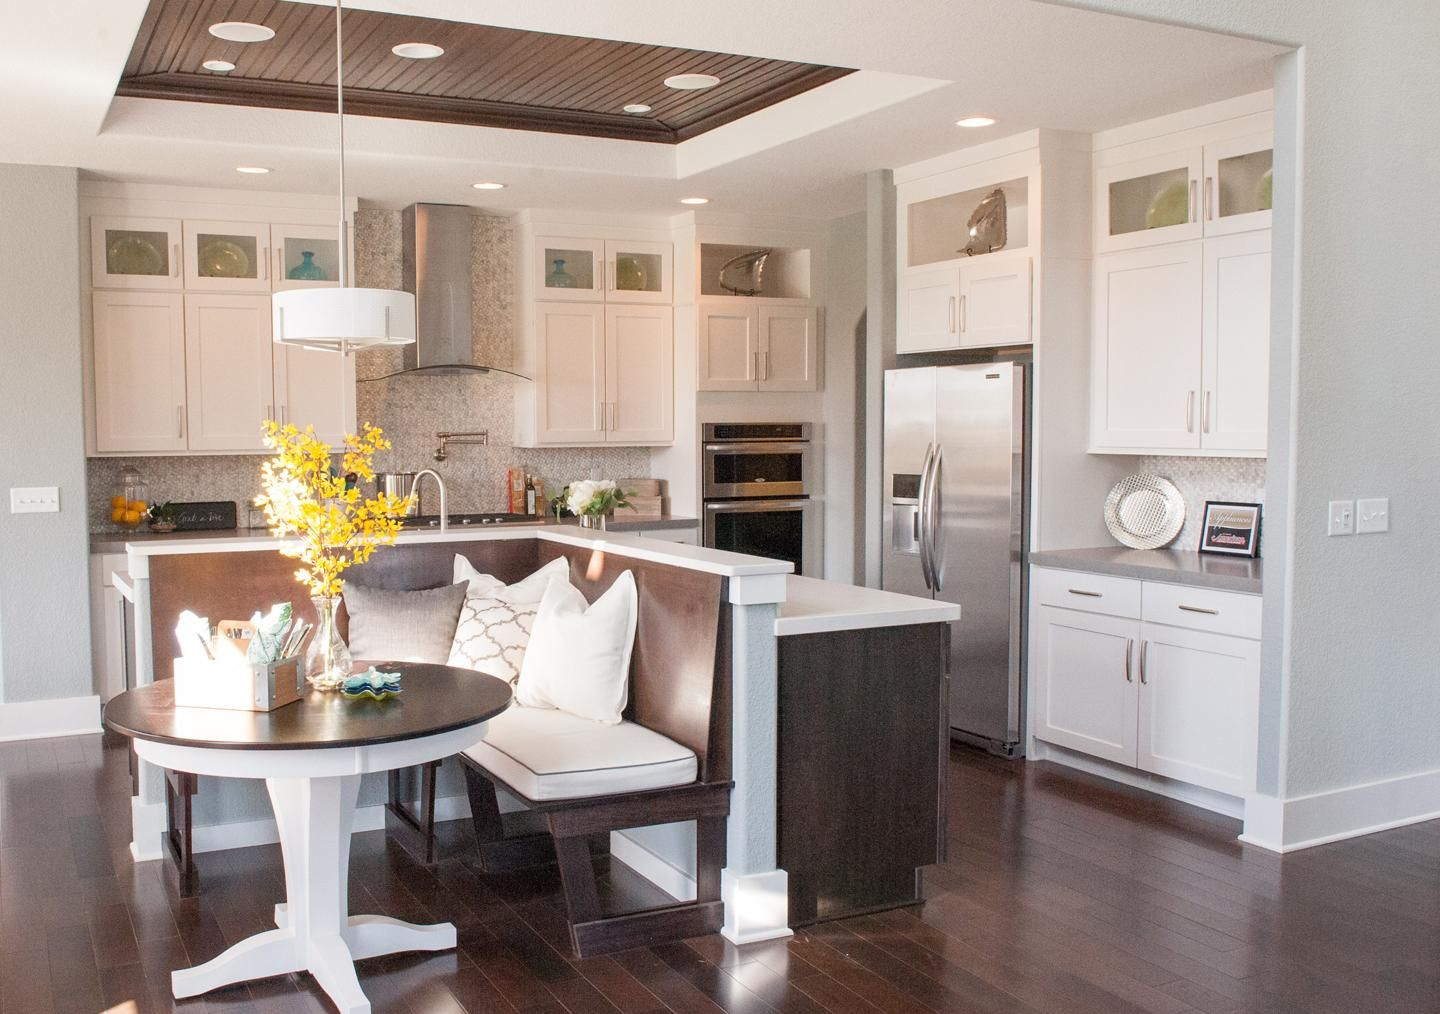 photo gallery | new homes milwaukee | tim o'brien homes | kitchens